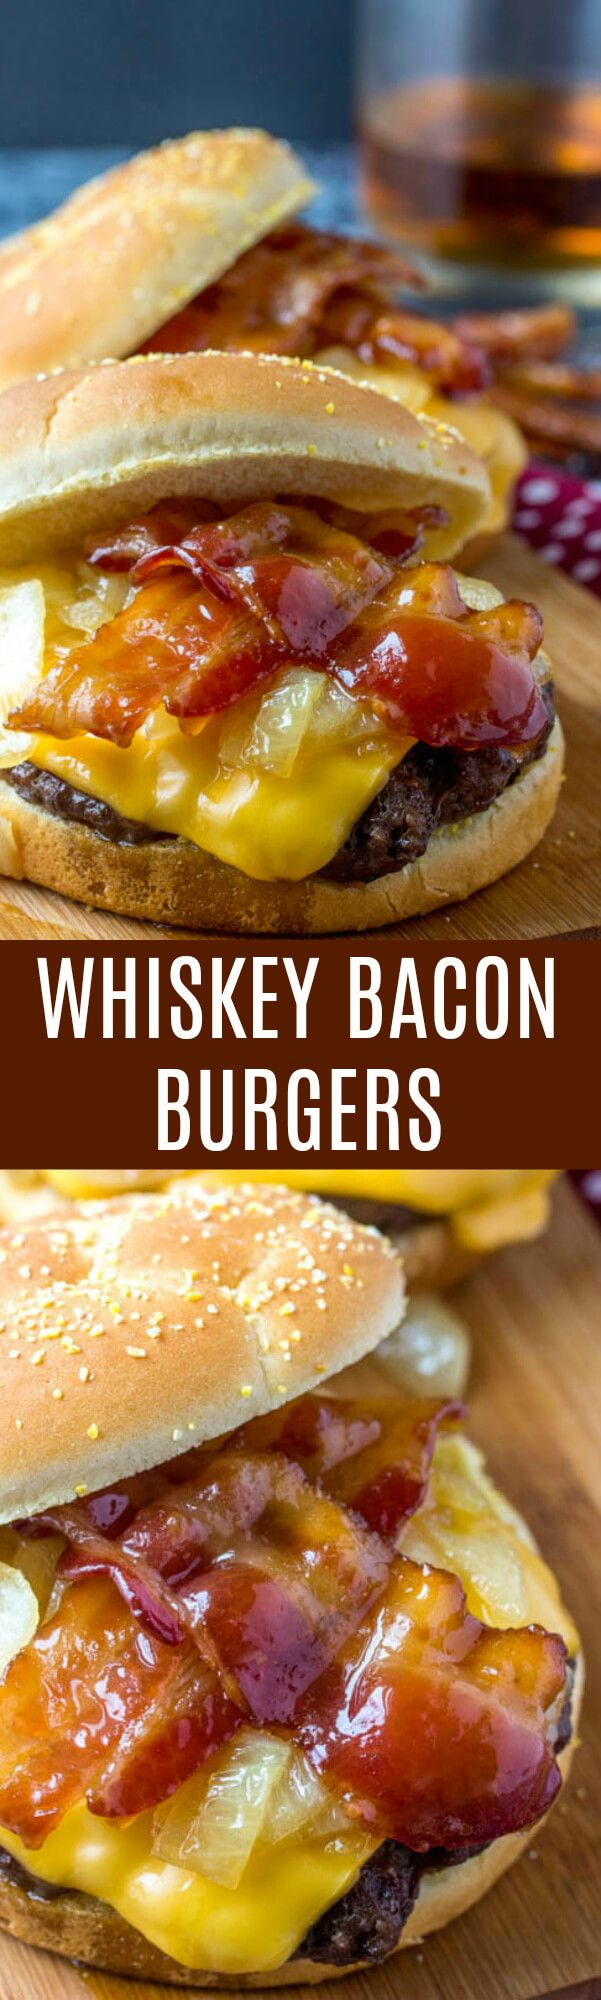 Tender and tasty these Whiskey Bacon Burgers are a quick and easy game day or gilling meal that you will want to make over and over again! via @amiller1119